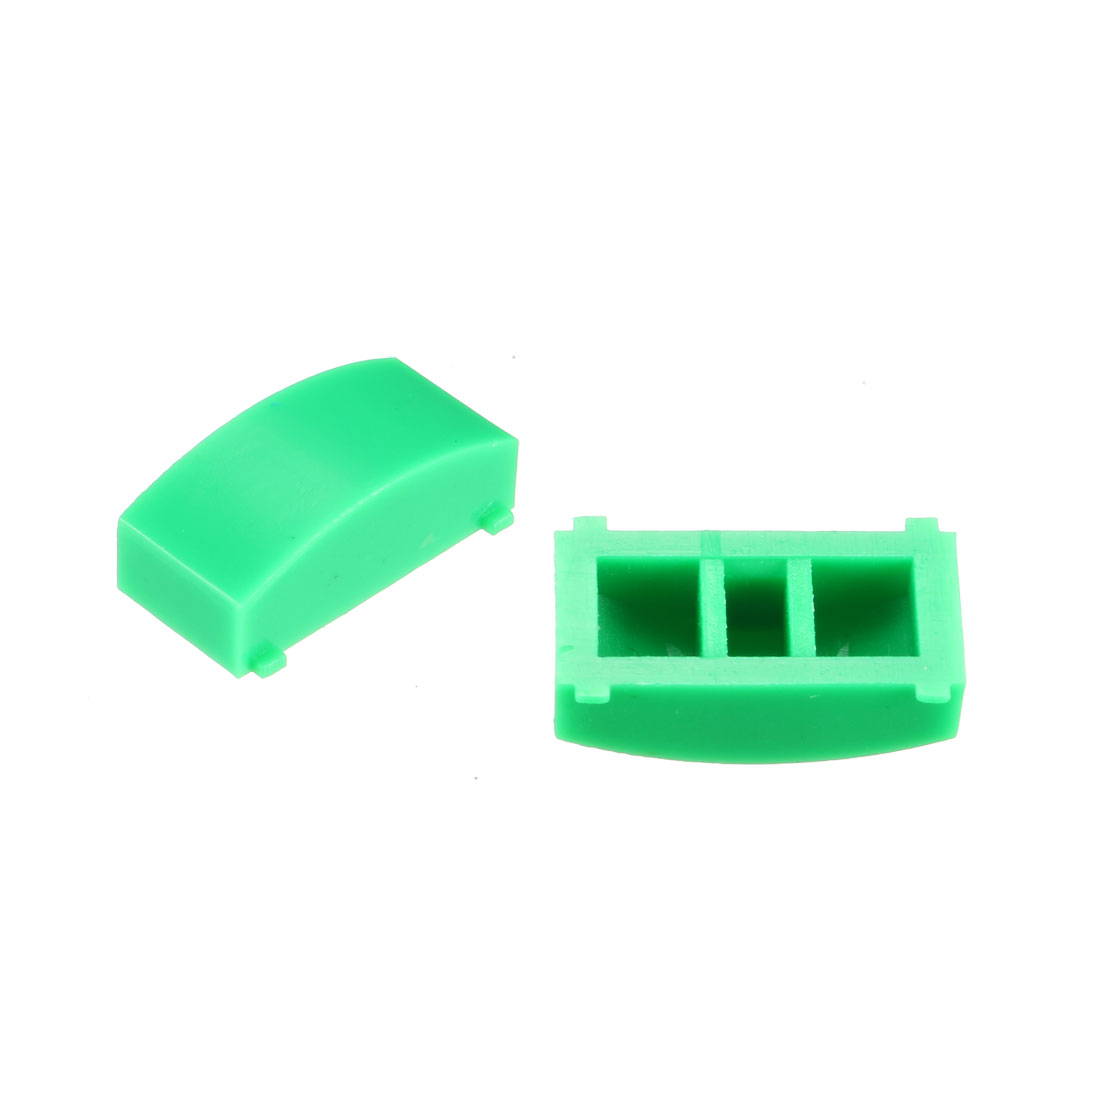 50Pcs 12.4x4.5mm Tact Switch Caps Cover Green for 8x8 Latching Pushbutton Switch